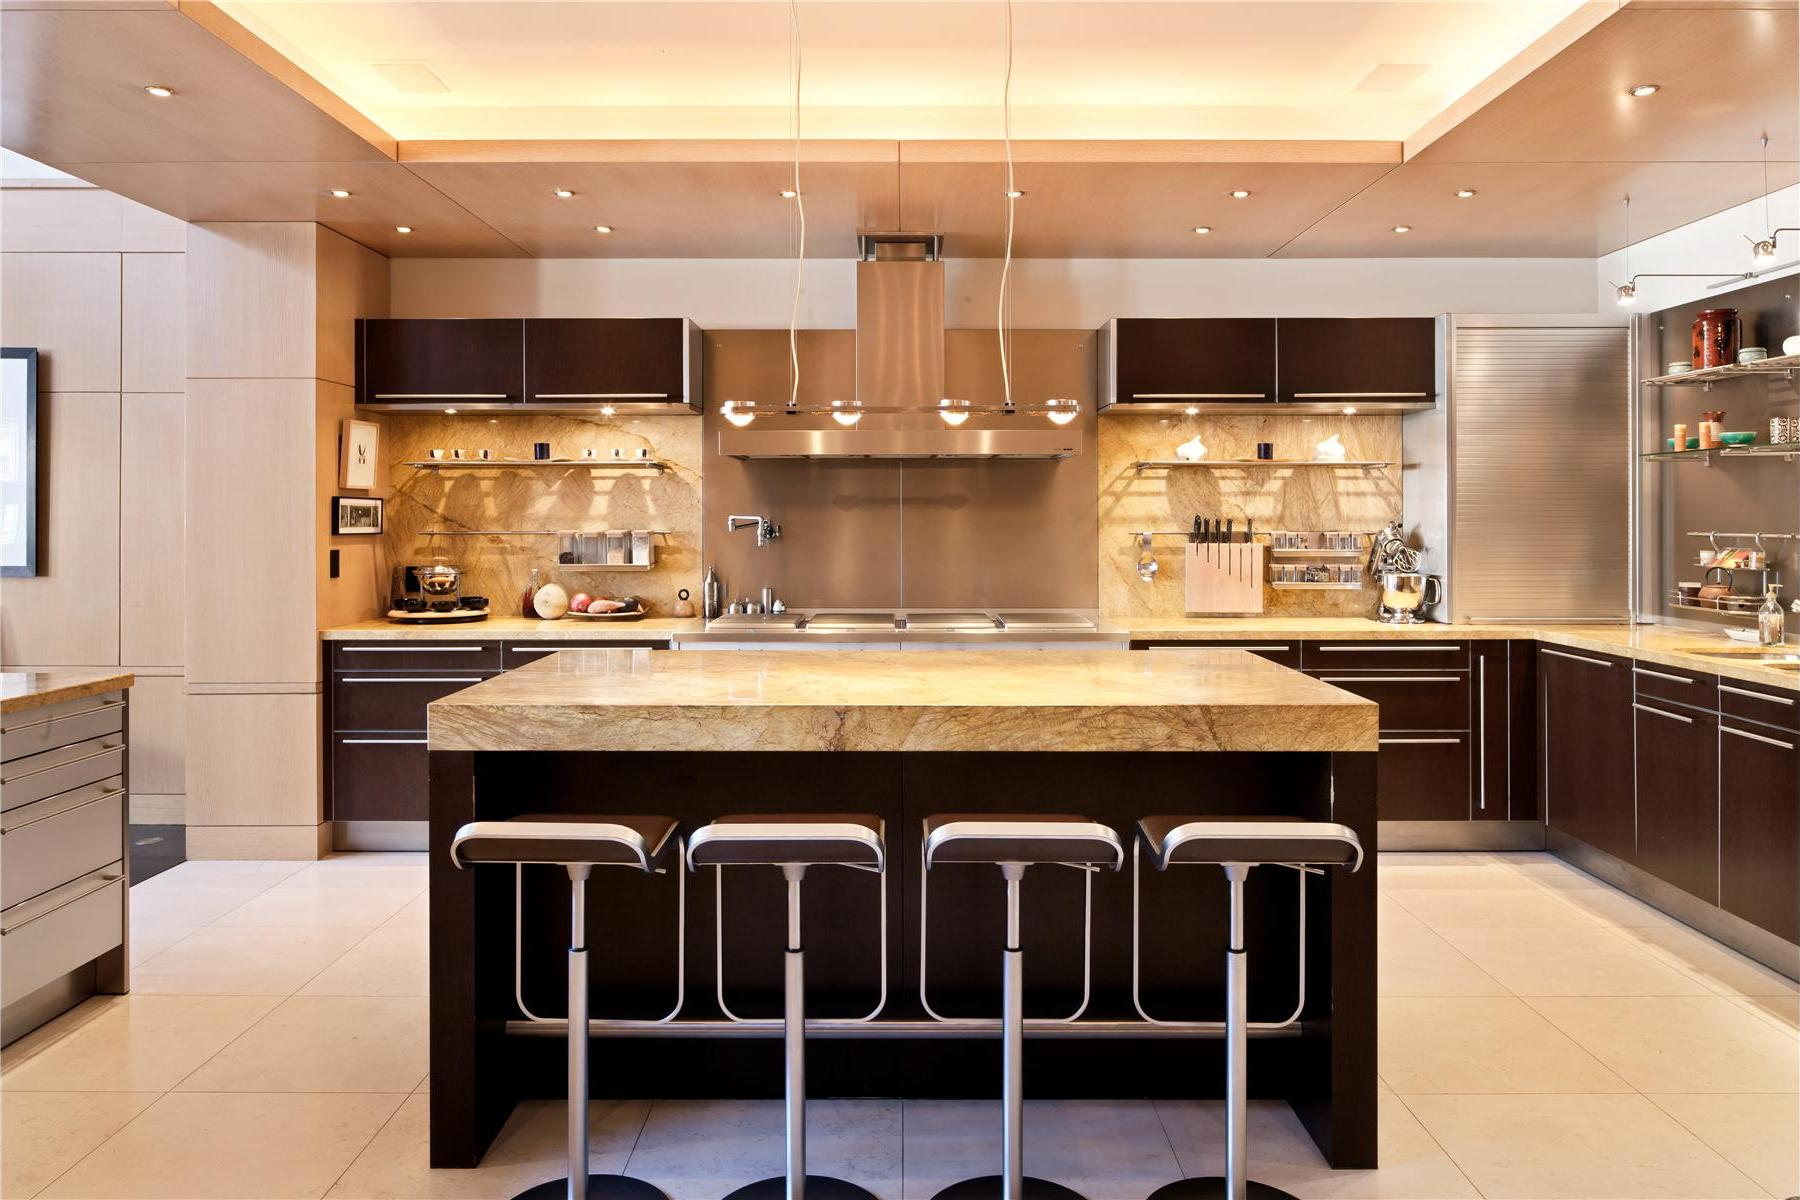 green kitchen remodeling ideas - friendly contractor